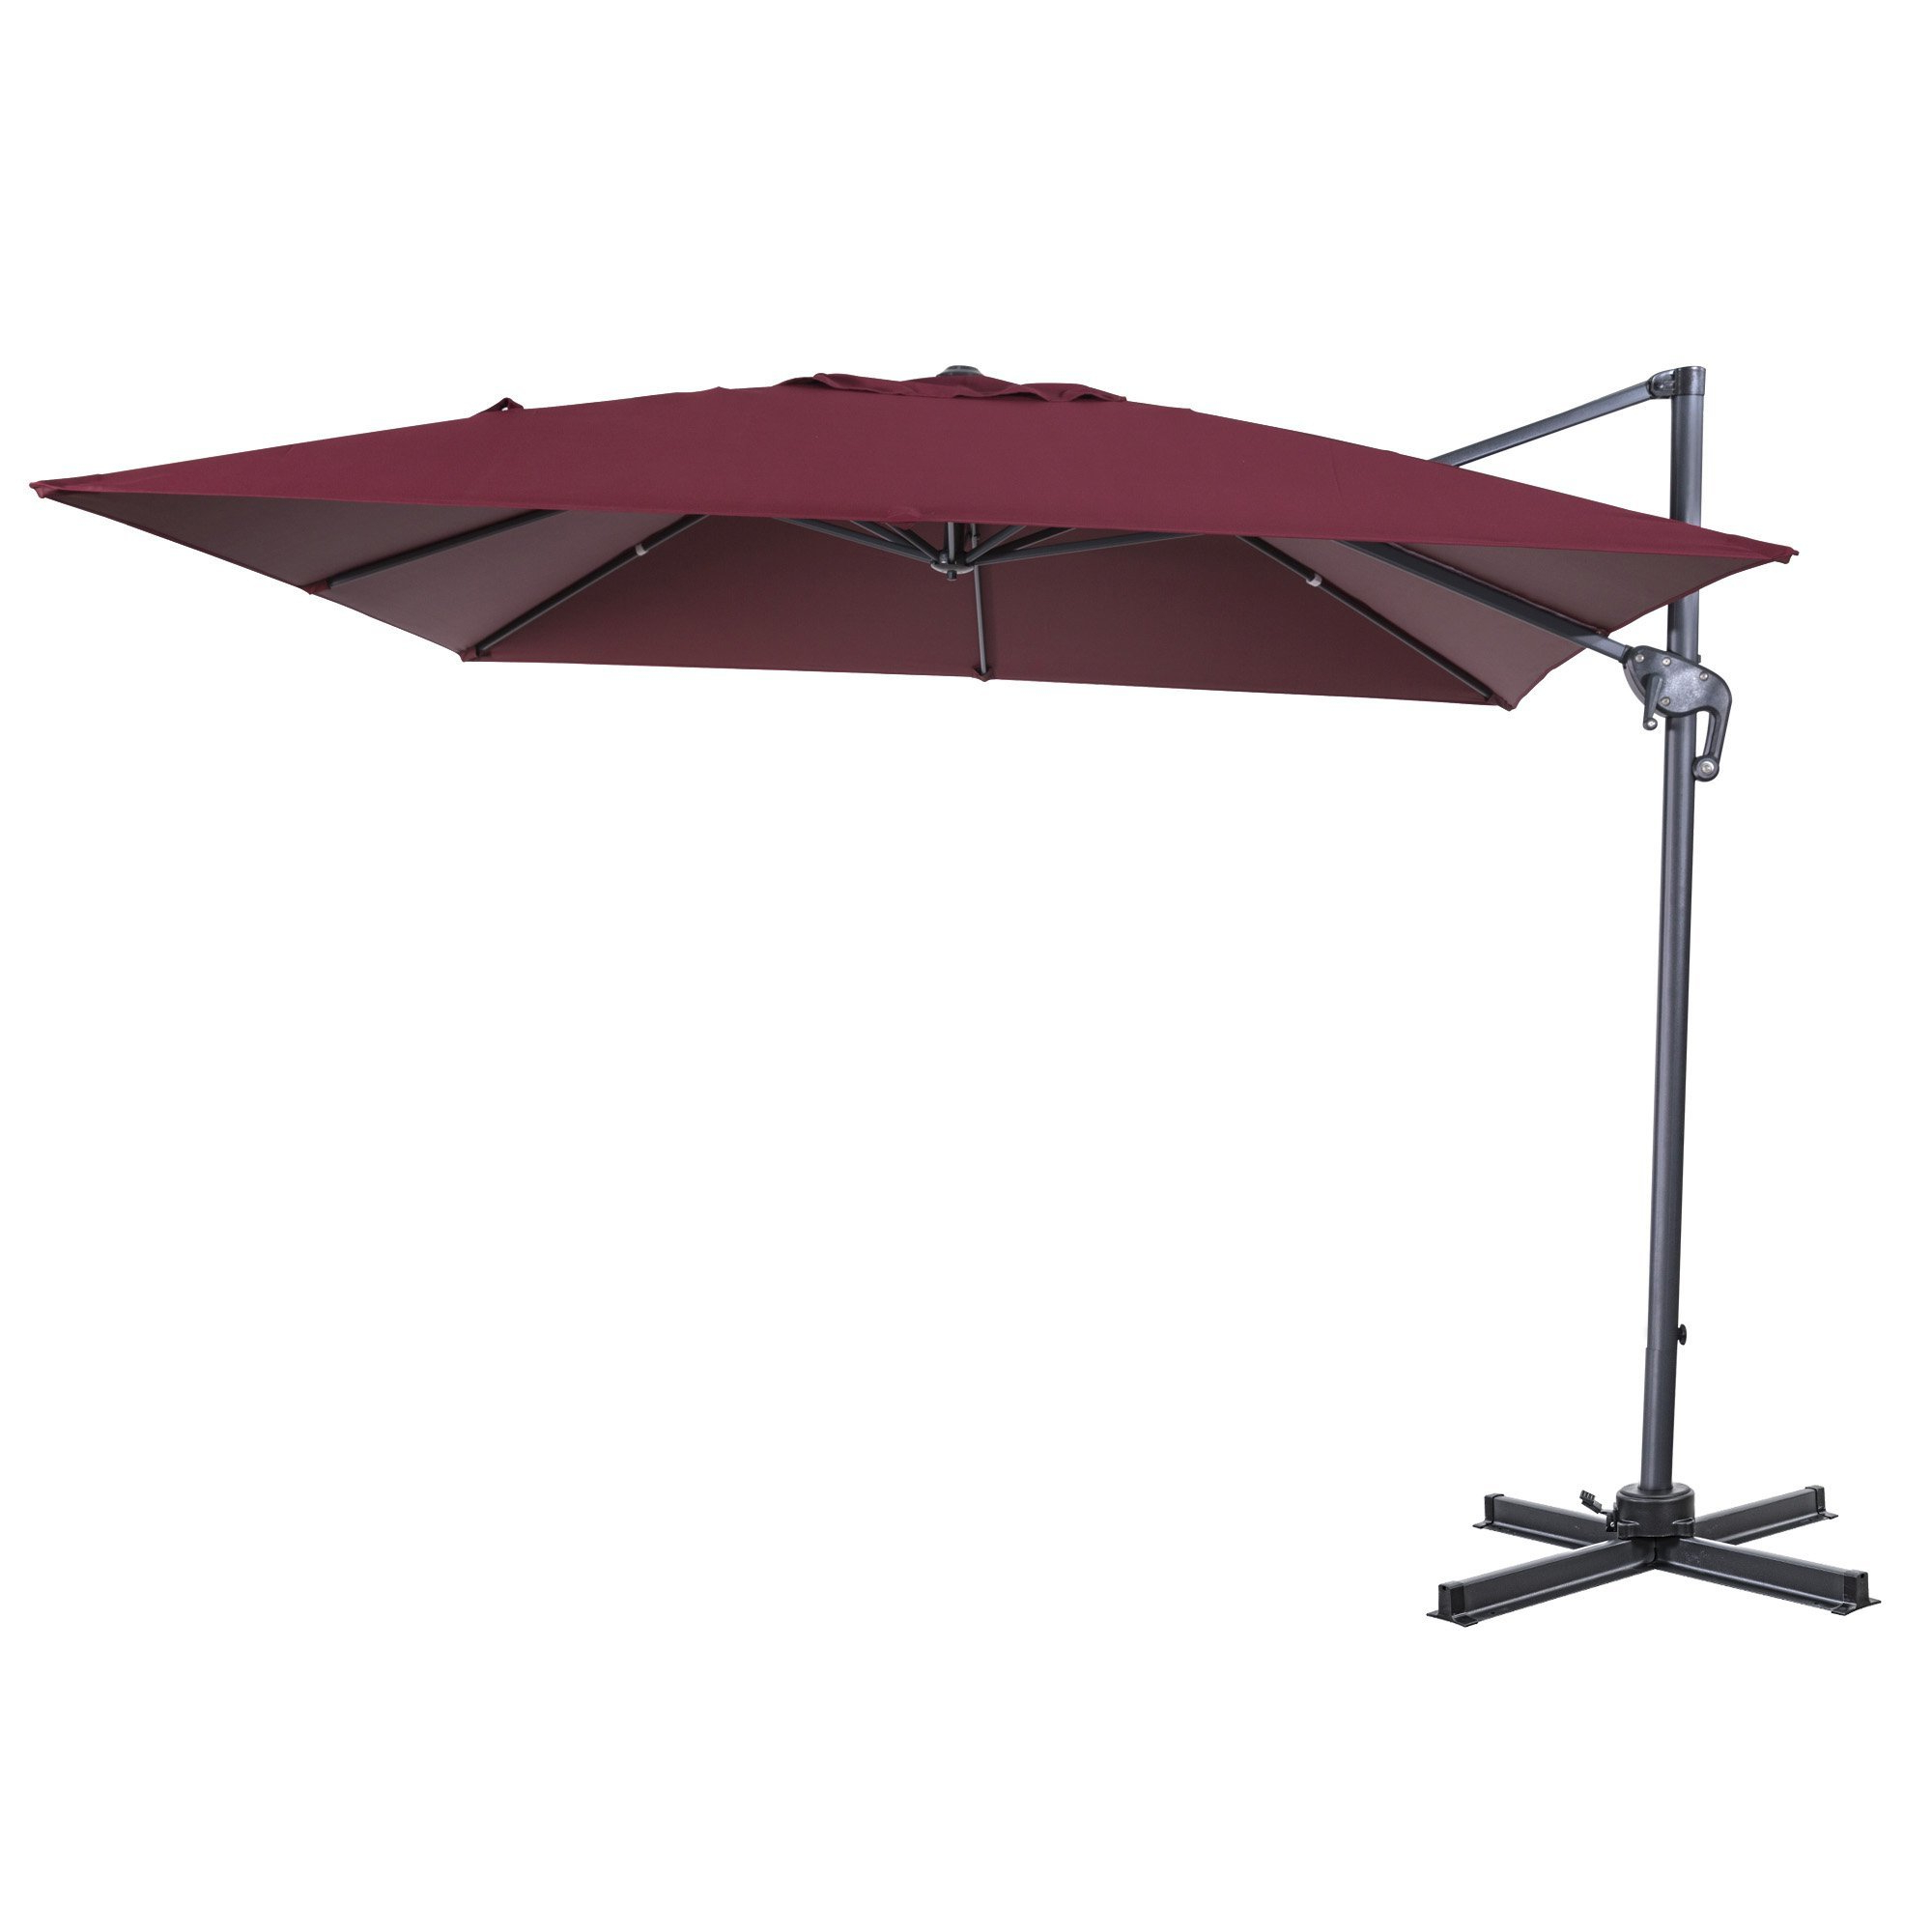 Elmhur Patio Offset 10' Cantilever Umbrella With 2019 Cockermouth Rotating Cantilever Umbrellas (View 13 of 20)